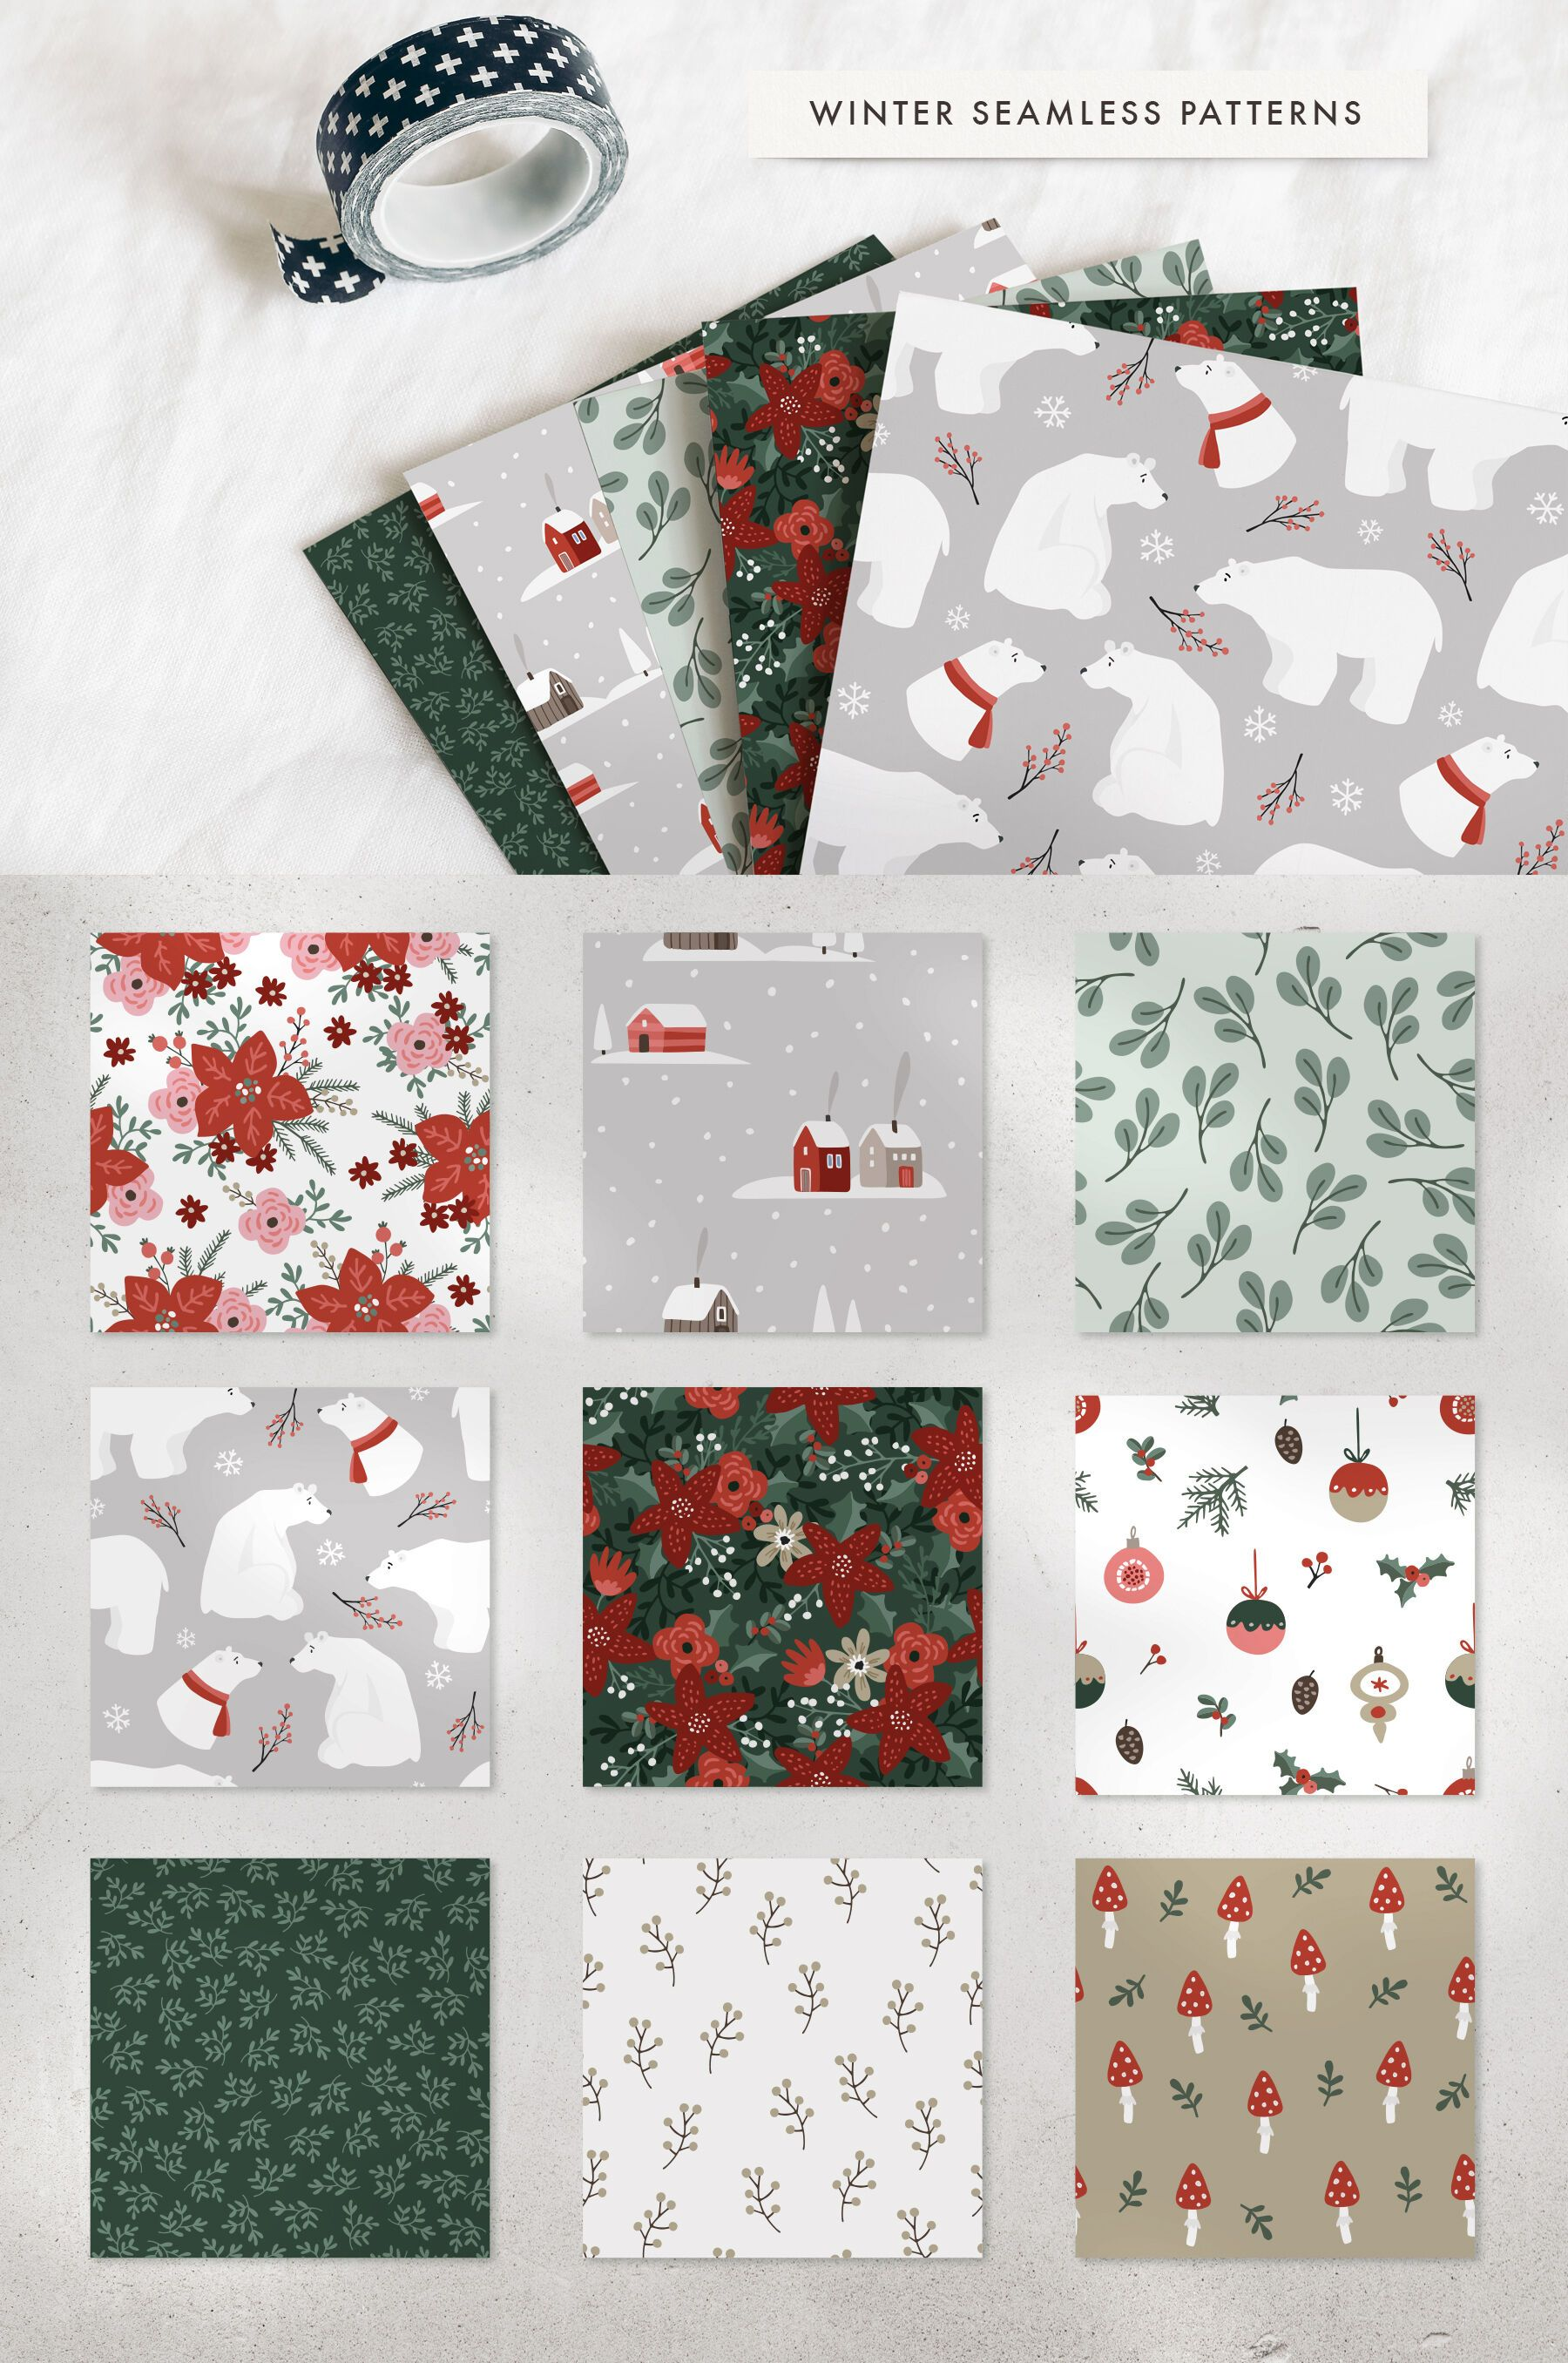 Bright Christmas illustrations, cards, patterns By Tabita